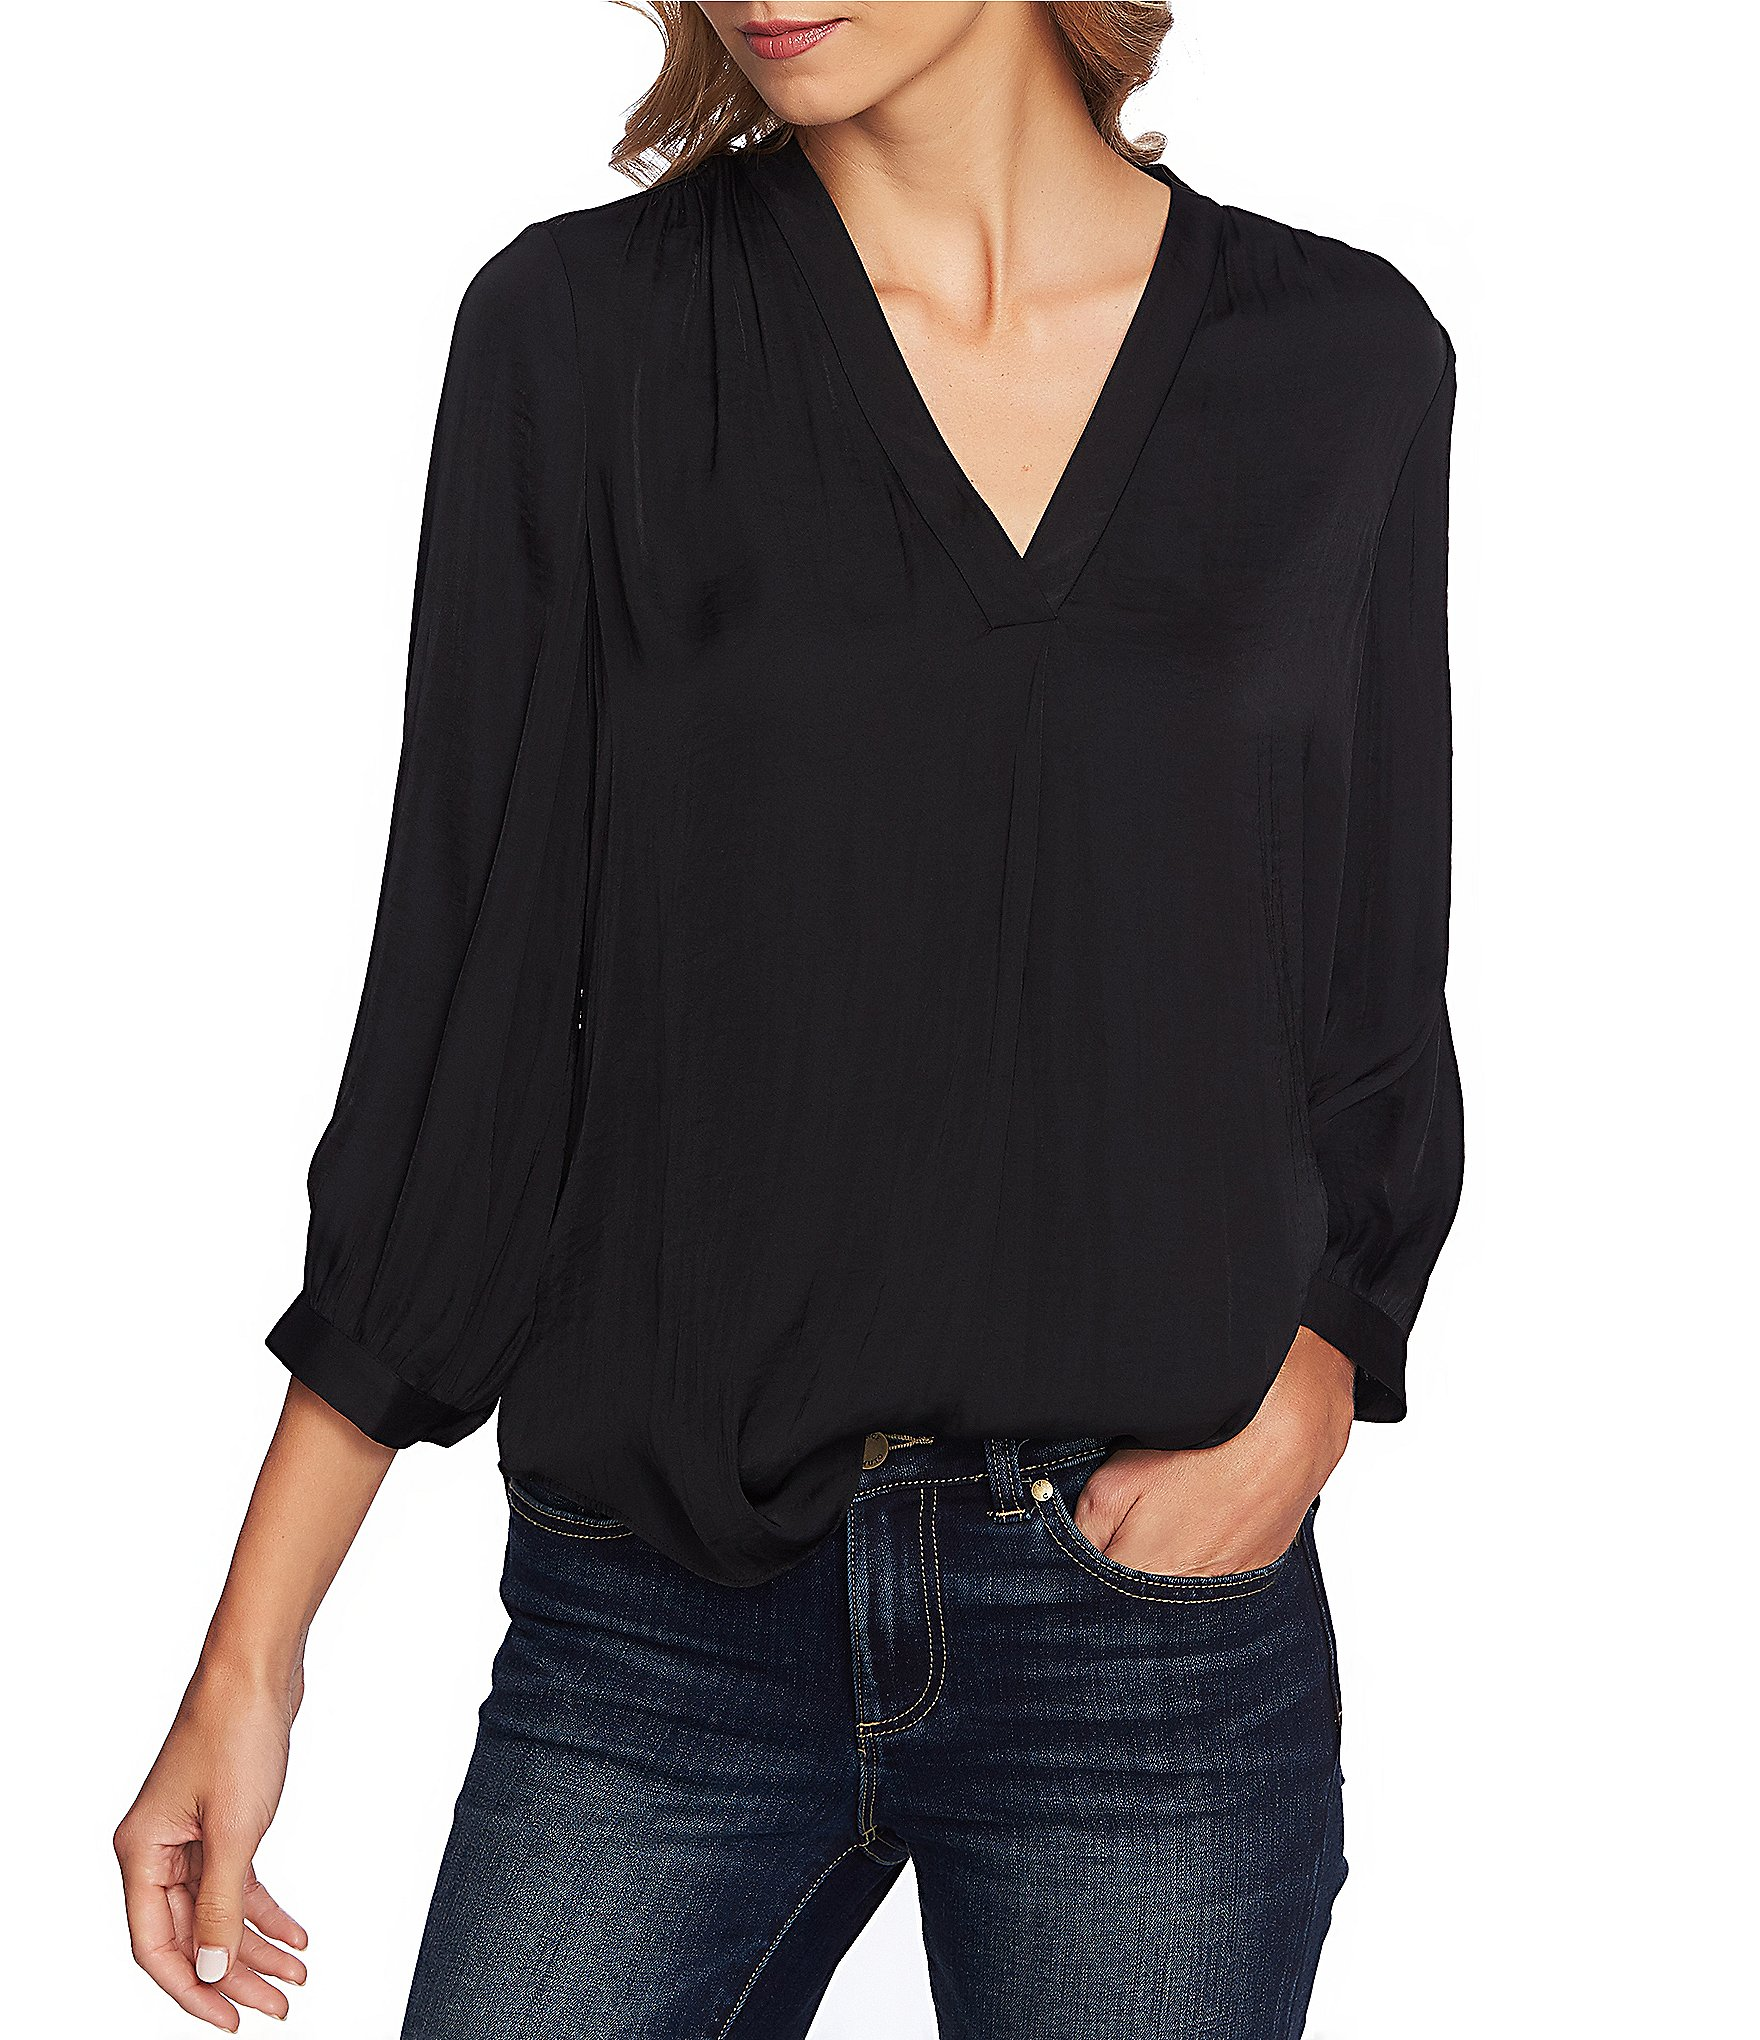 eea605ed0c1d1 vince camuto womens  Women s Casual   Dressy Tops   Blouses